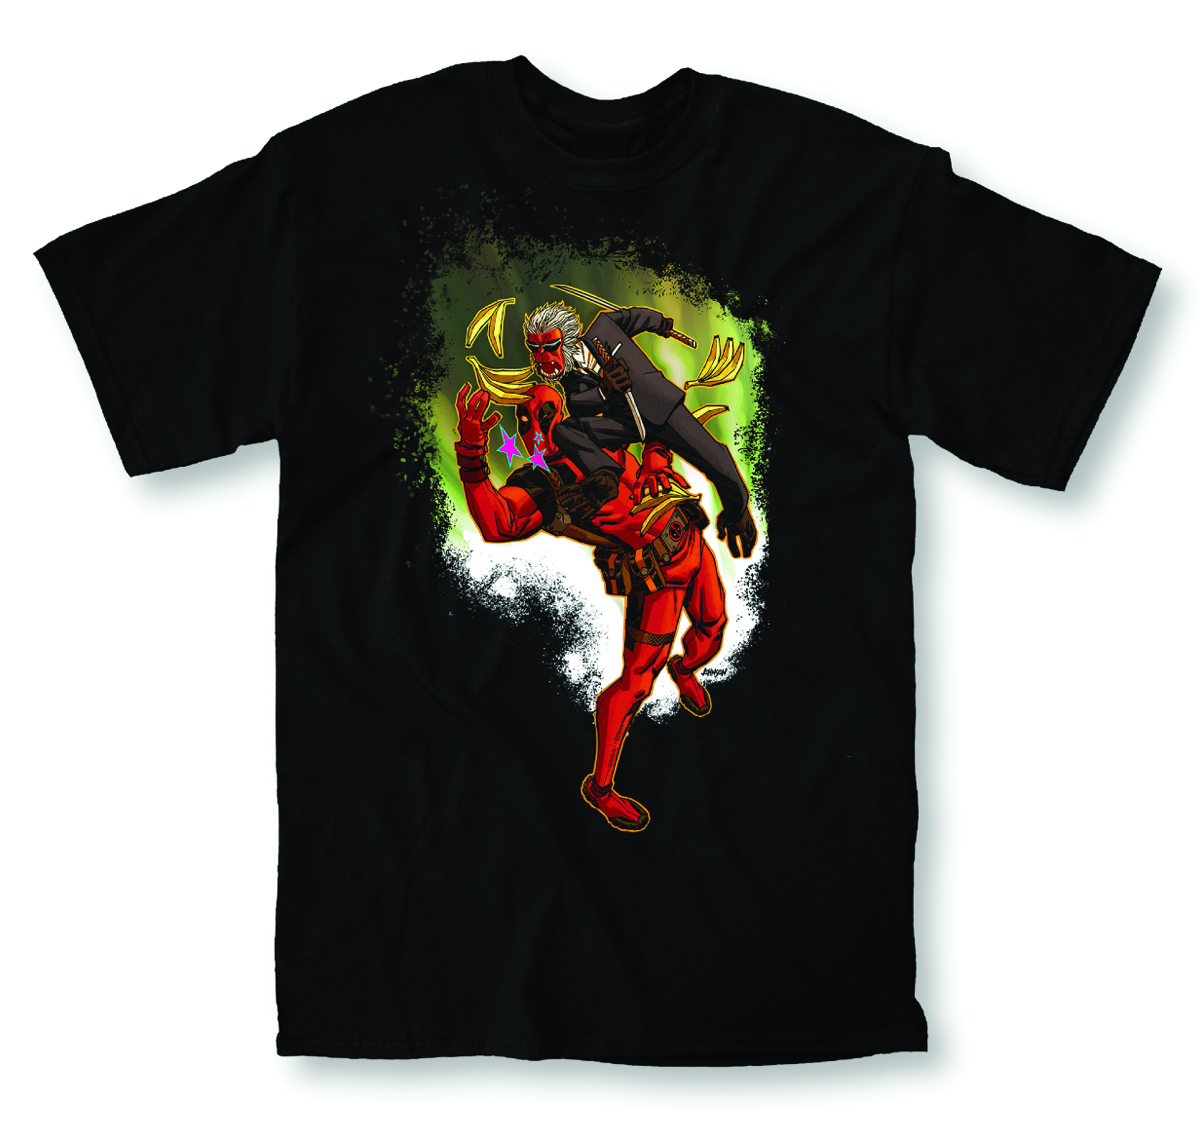 DEADPOOL SALTED EARTH A PX BLK T/S LG